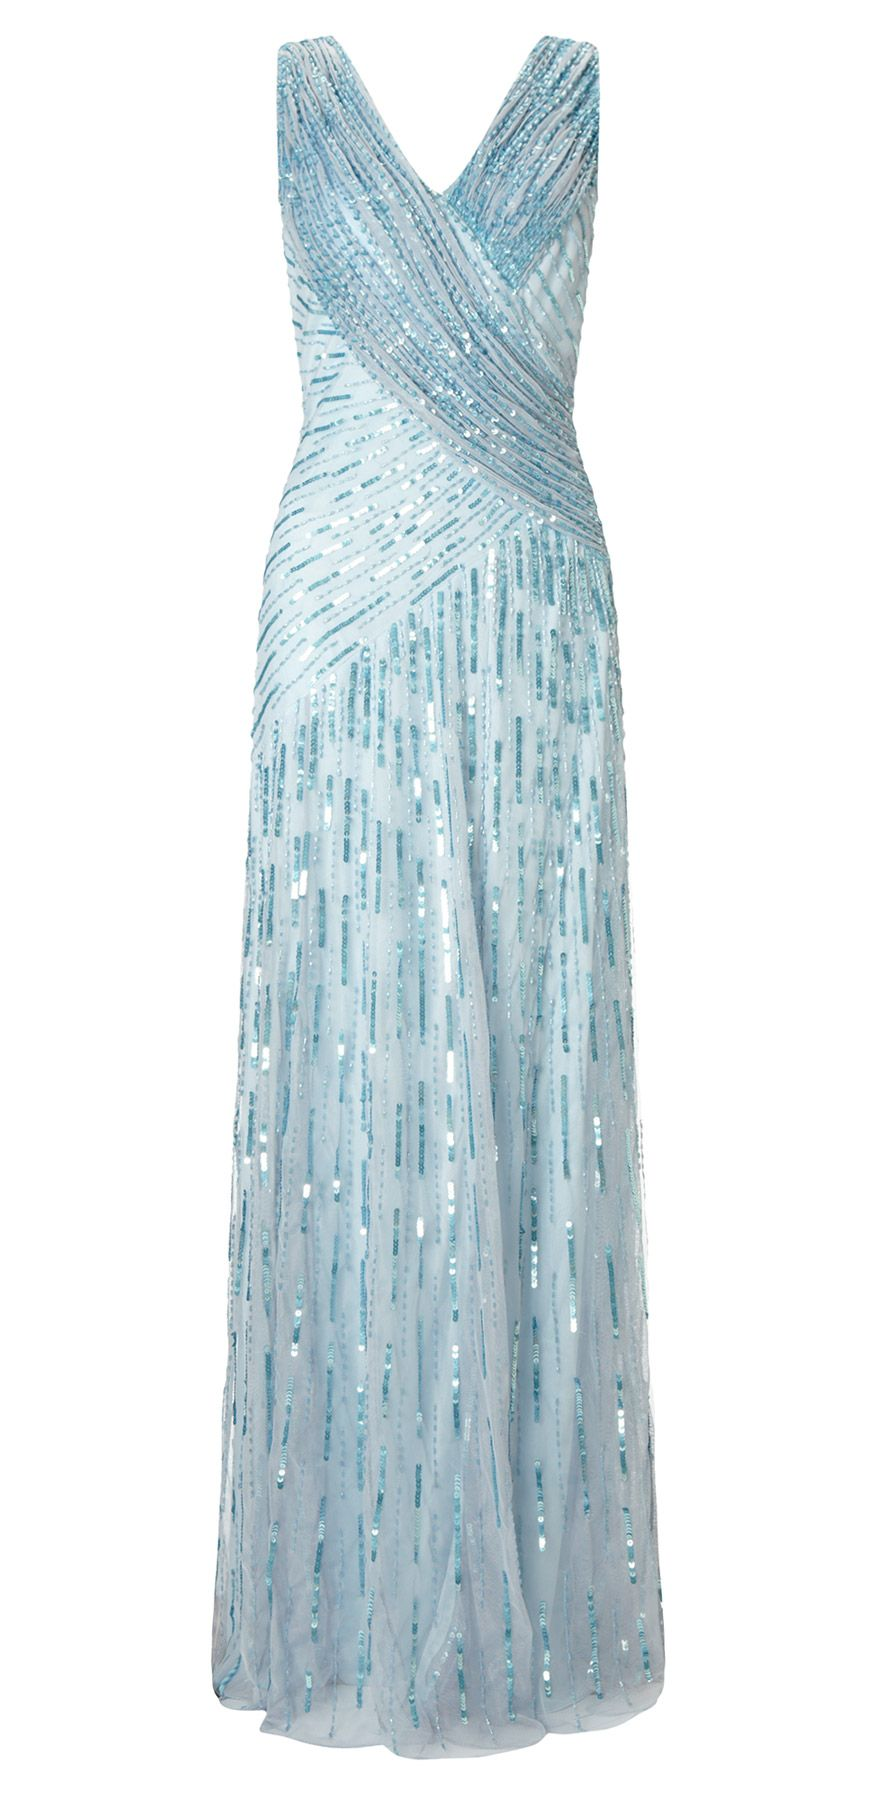 Juliet Sequin Long Dress Silver Blue. This full-length 1920s style ...